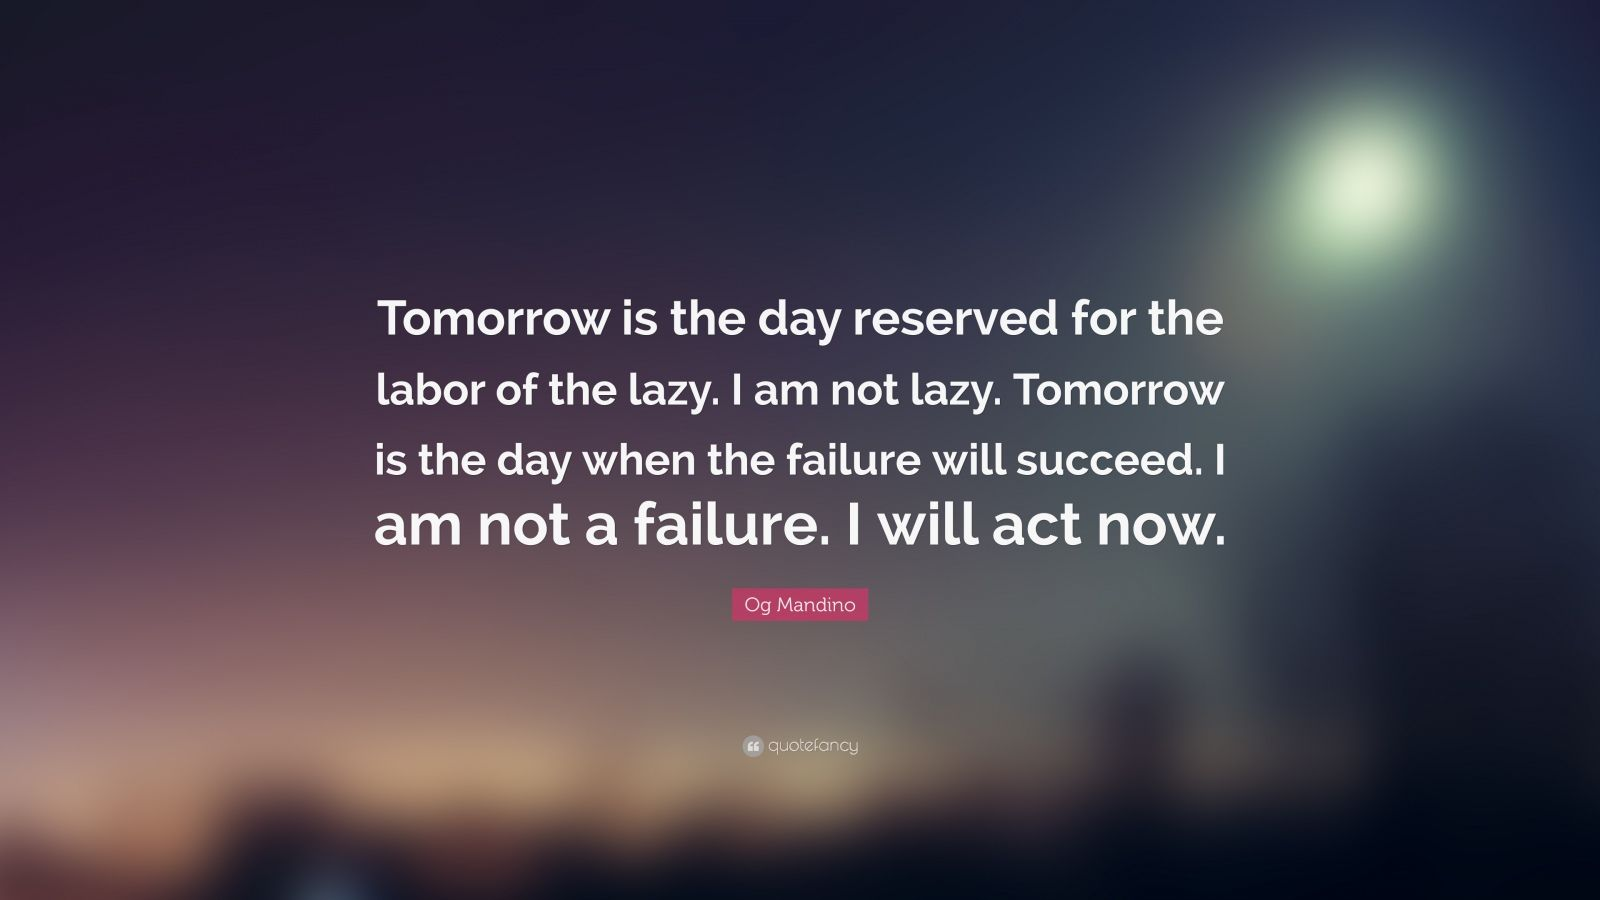 "Og Mandino Quote: ""Tomorrow is the day reserved for the labor of the lazy. I am not lazy. Tomorrow is the day when the failure will succeed. I am not a failure. I will act now."""